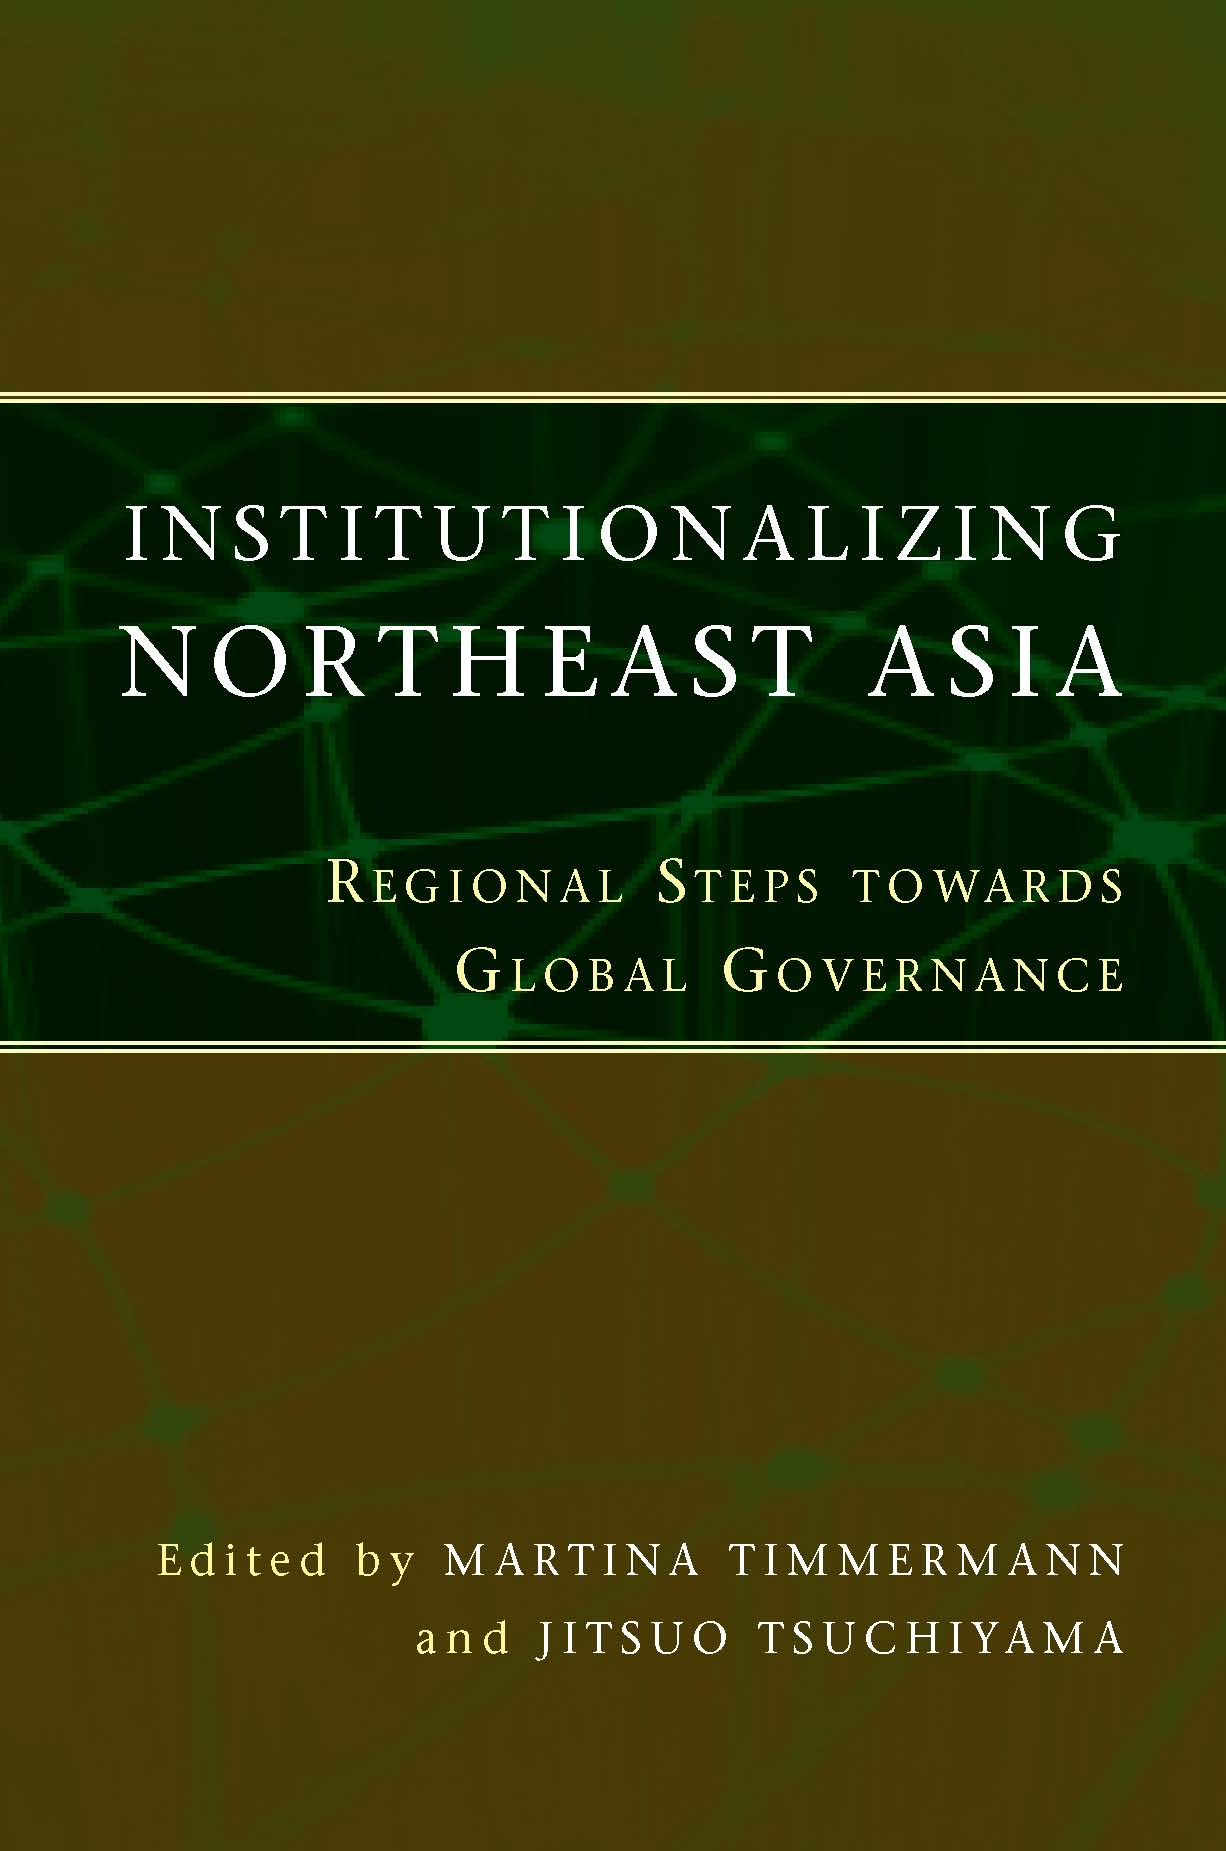 Institutionalizing Northeast Asia: Regional Steps towards